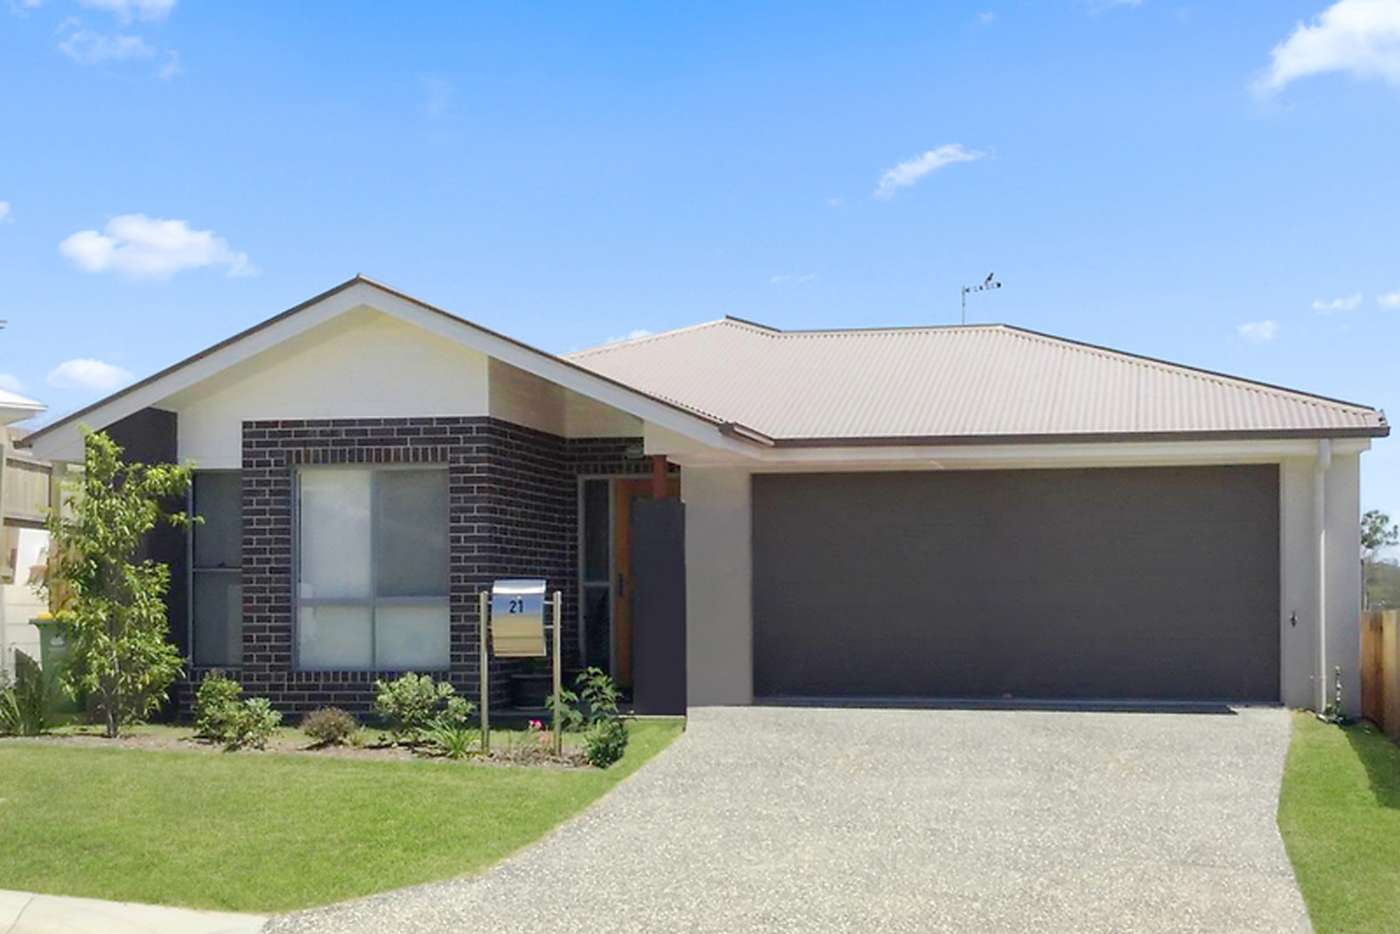 Main view of Homely house listing, 21 Nova Street, Waterford QLD 4133